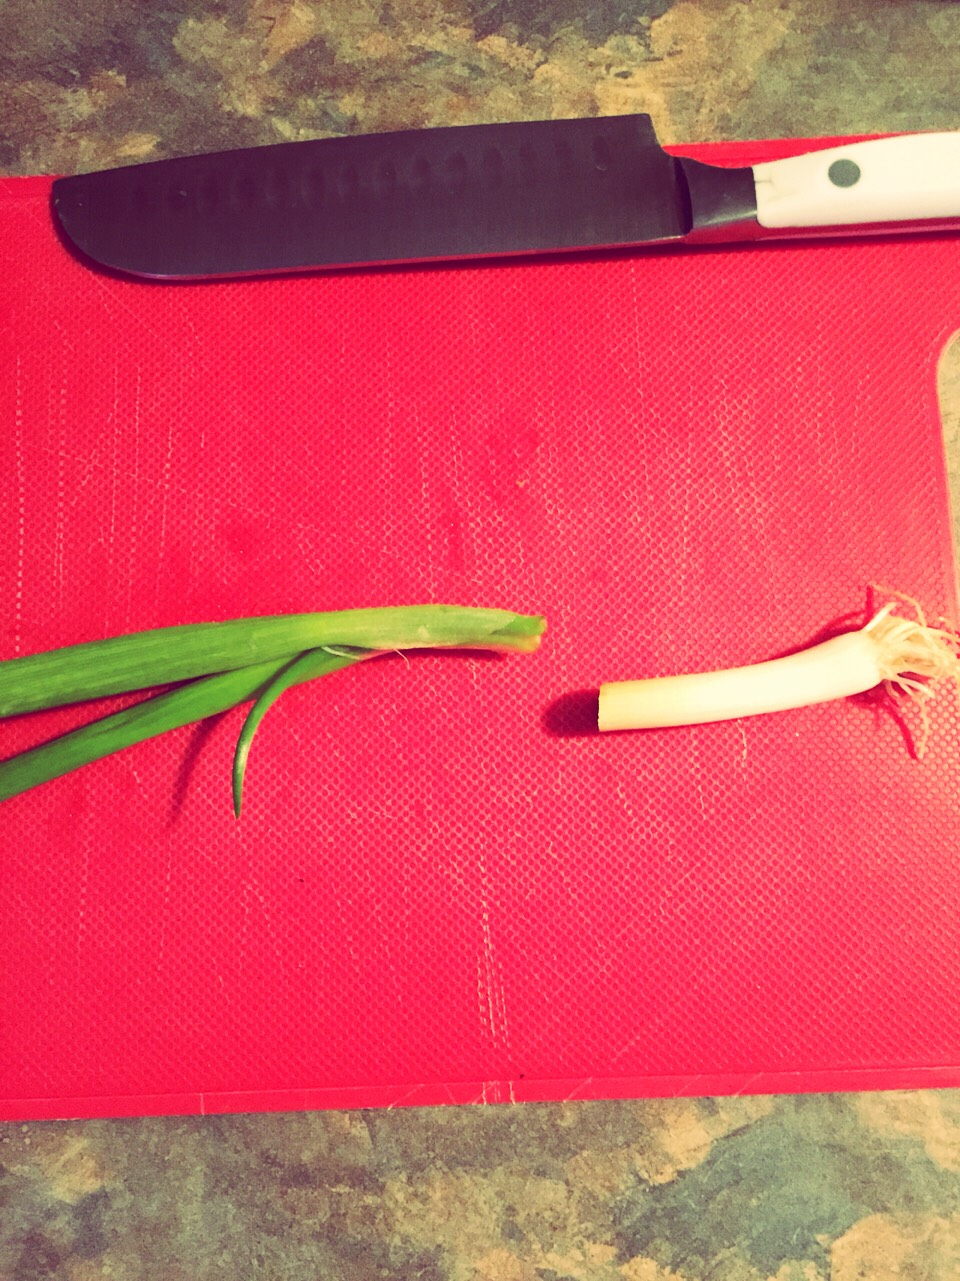 Cut the root of your onion about 2-3inch